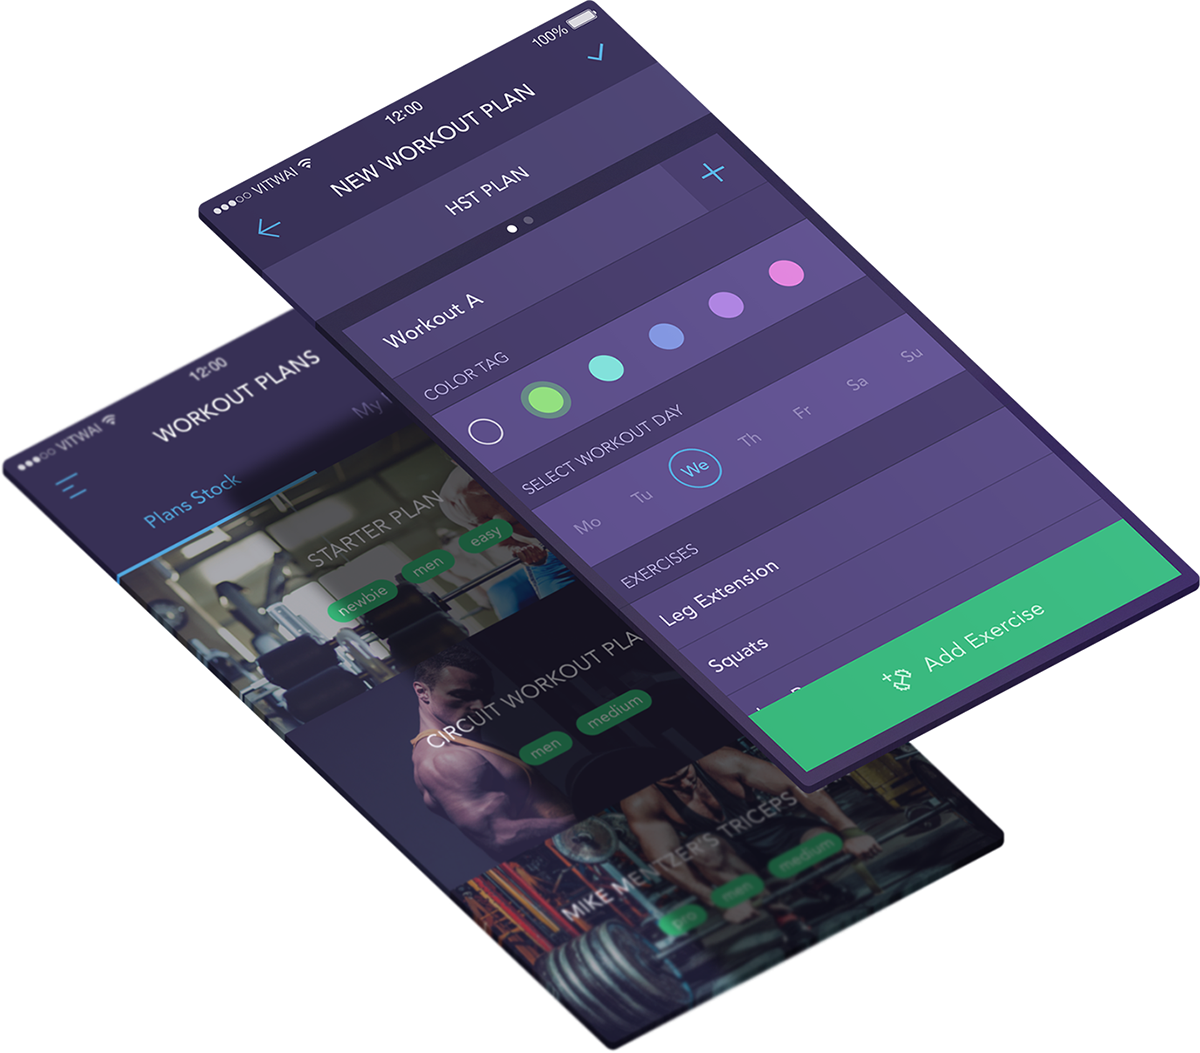 UI ux mobile ios workout gym gif interaction app fitness Interface design iOS Development training